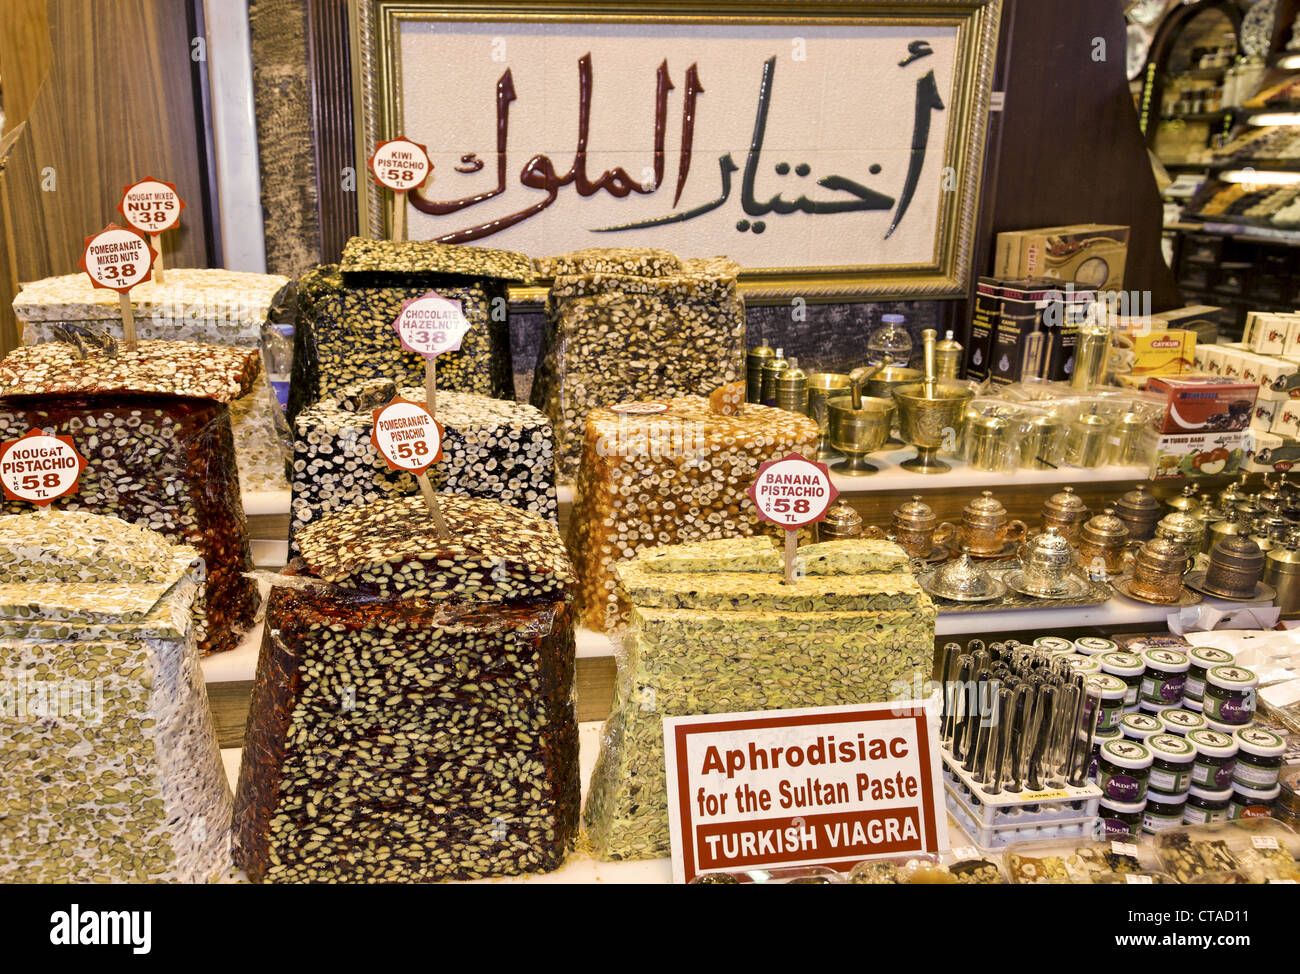 Sweets at Egyptian bazaar, Misir Carsisi, Istanbul, Turkey, Europe - Stock Image